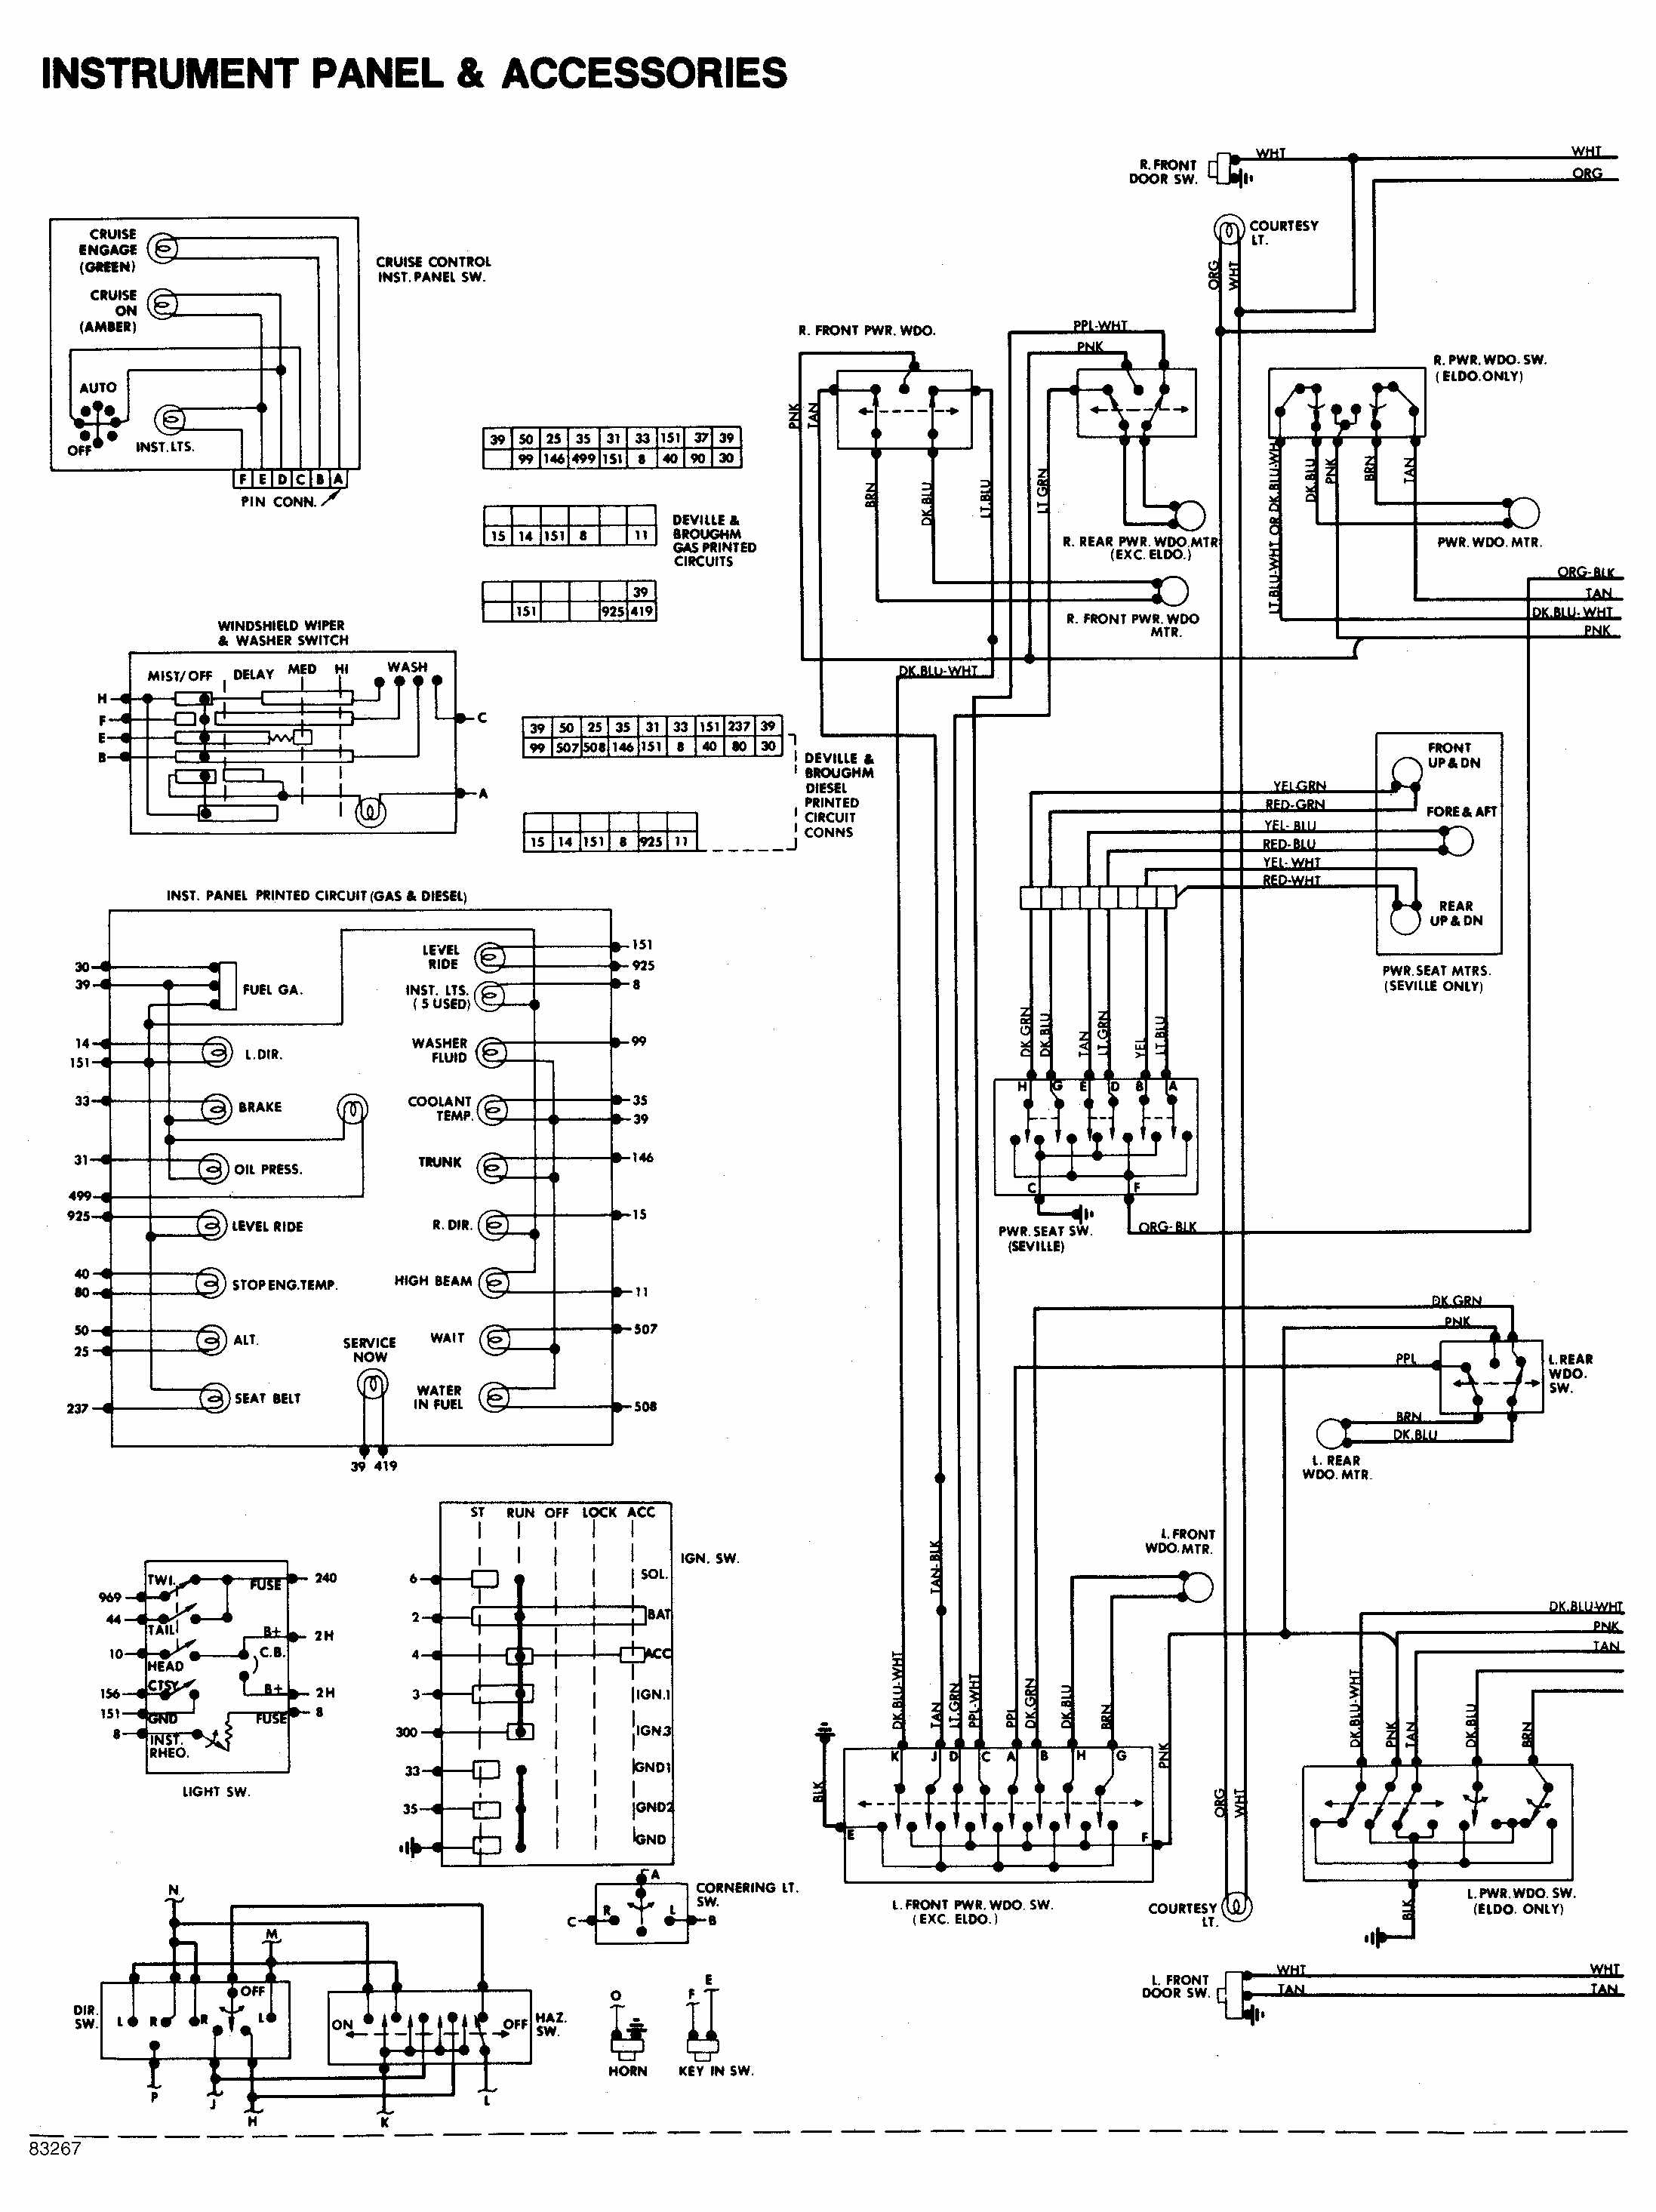 Vw Jetta Wiring Diagram Further 2003 Vw Jetta Radio Wiring Diagram